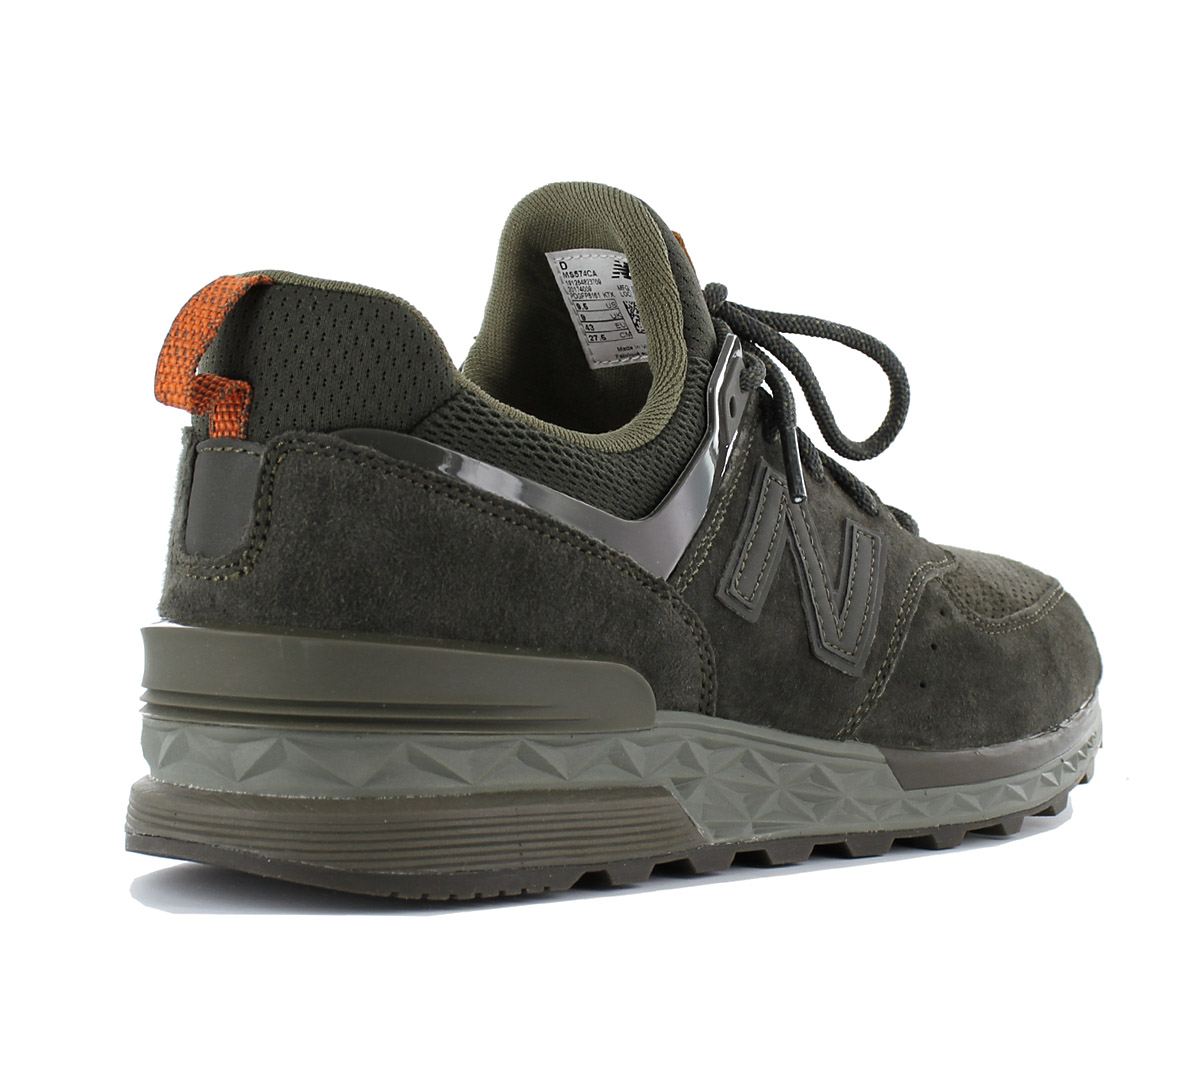 Details about NEW Balance 574 Fresh Foam Sneaker Mens Shoes Olive Green MS574CA MS574 Leather show original title